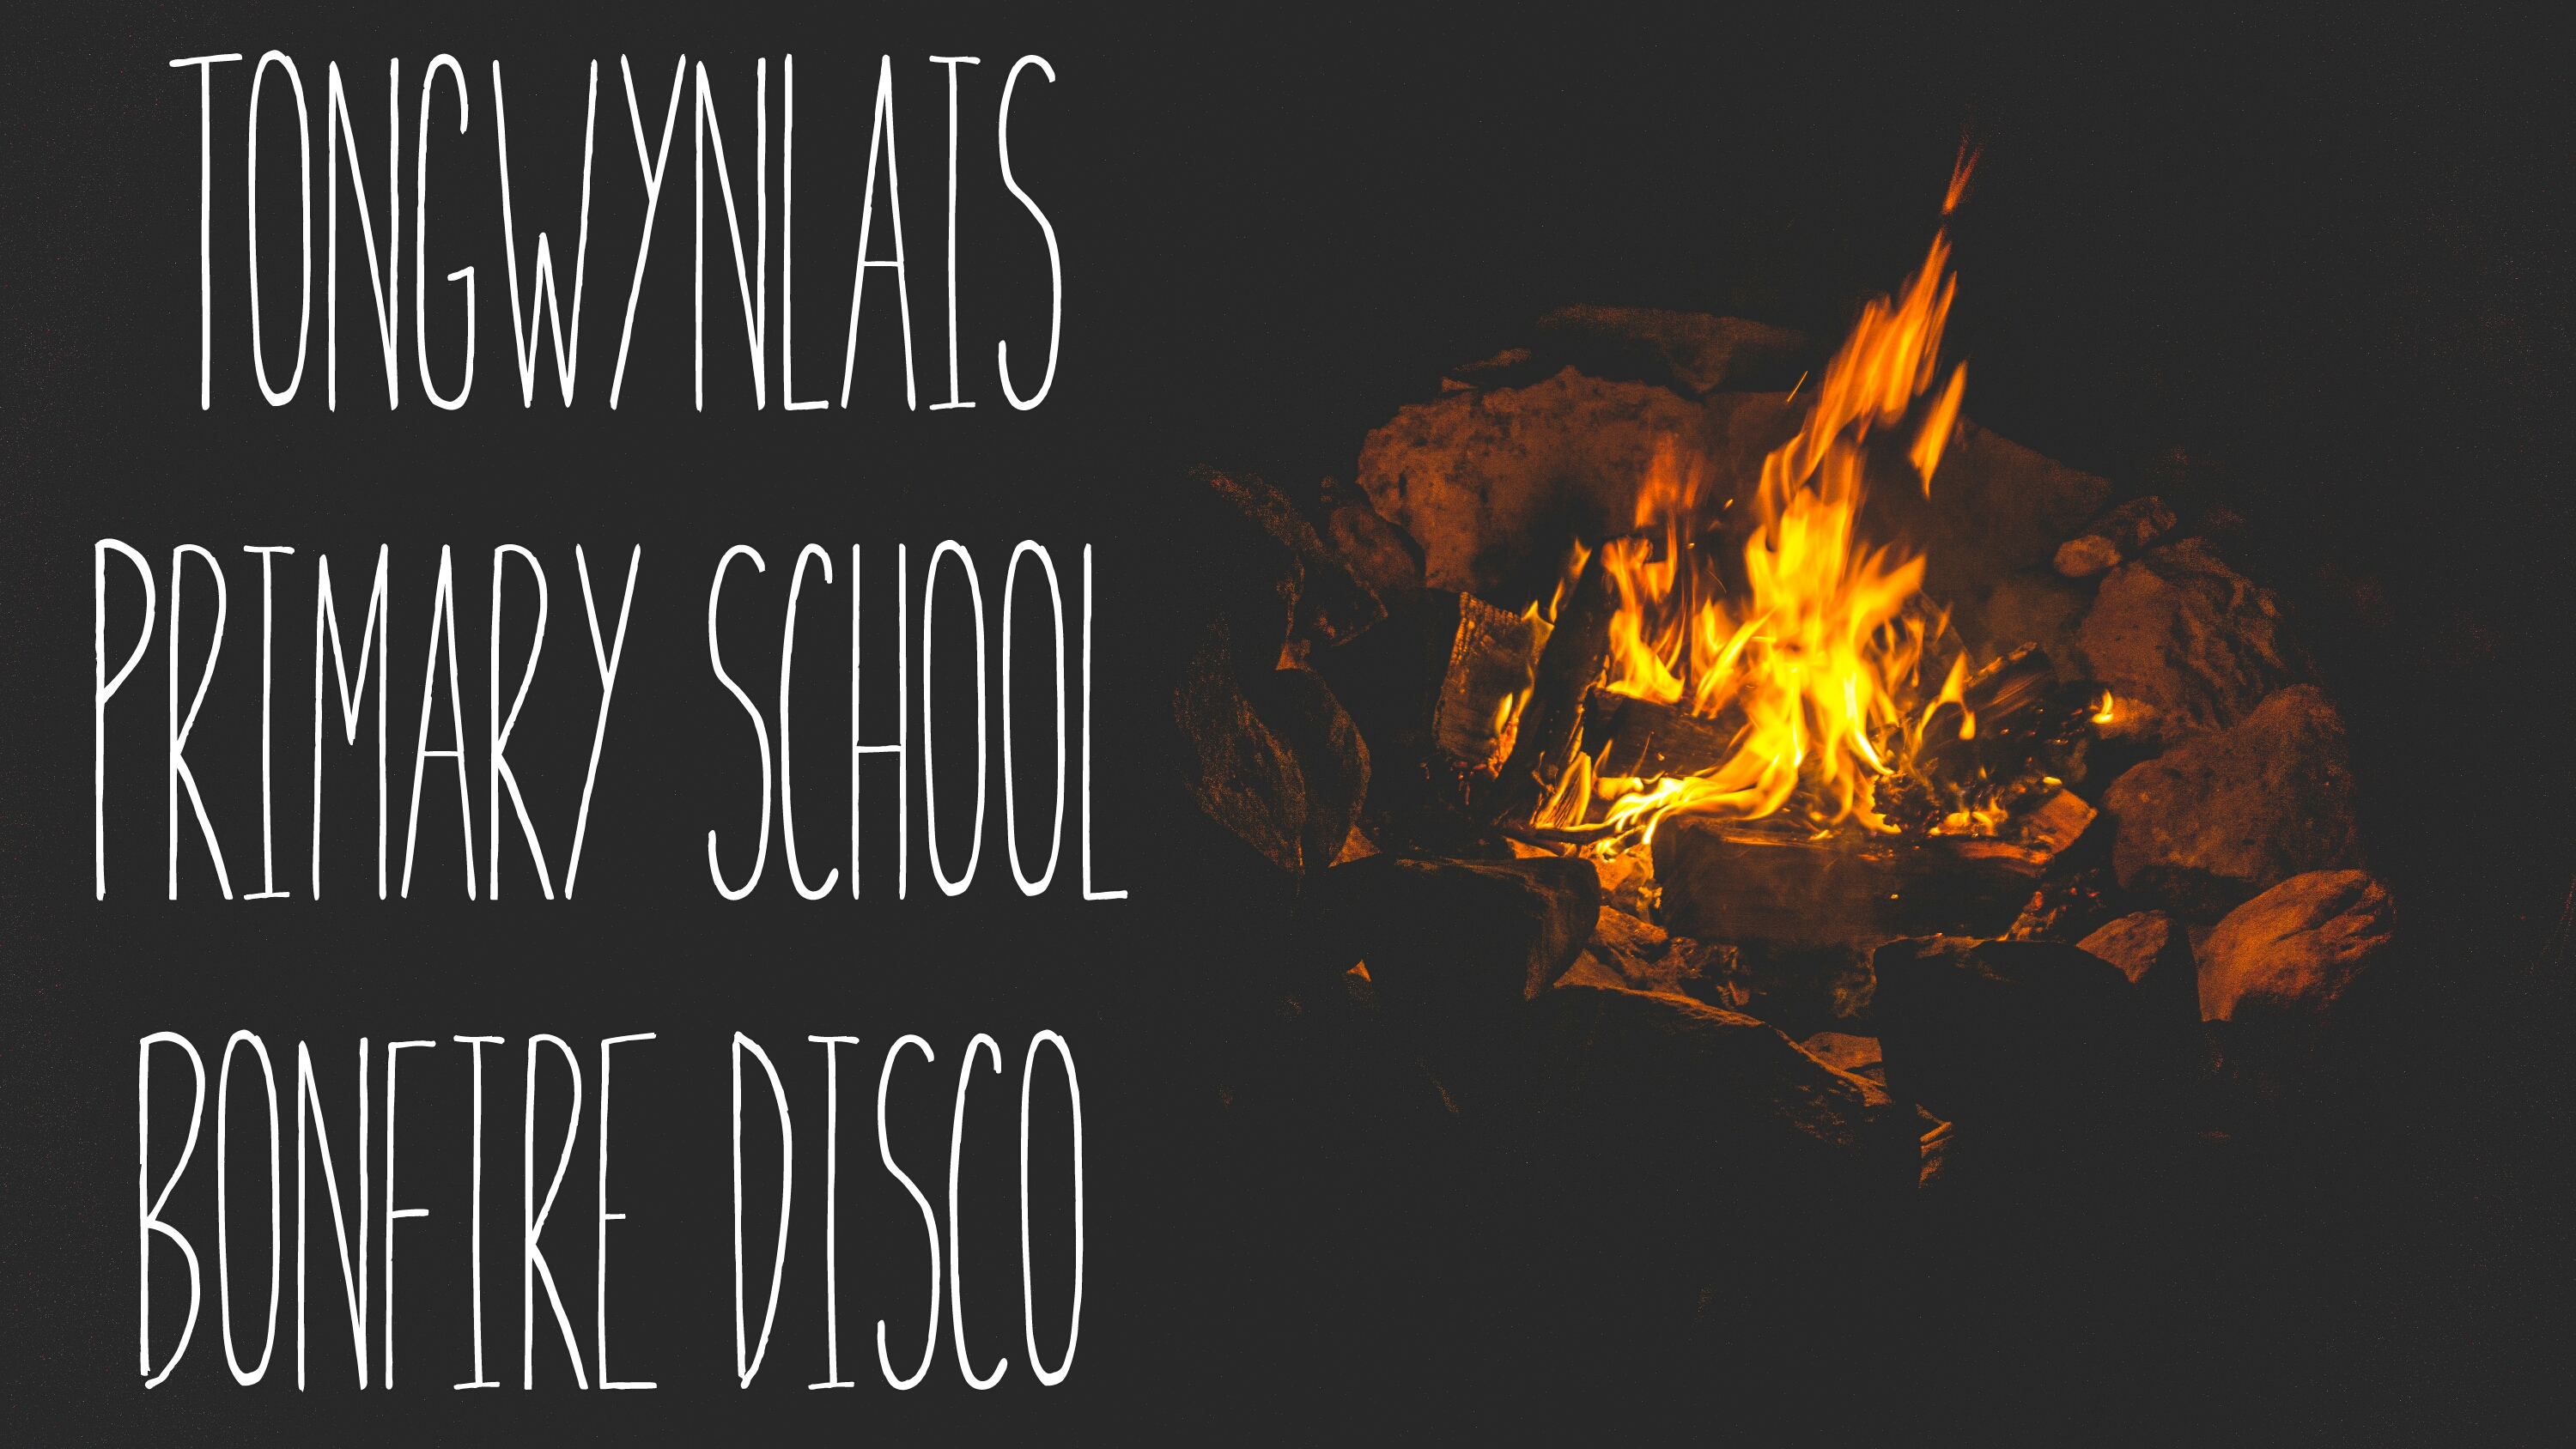 Bonfire disco header